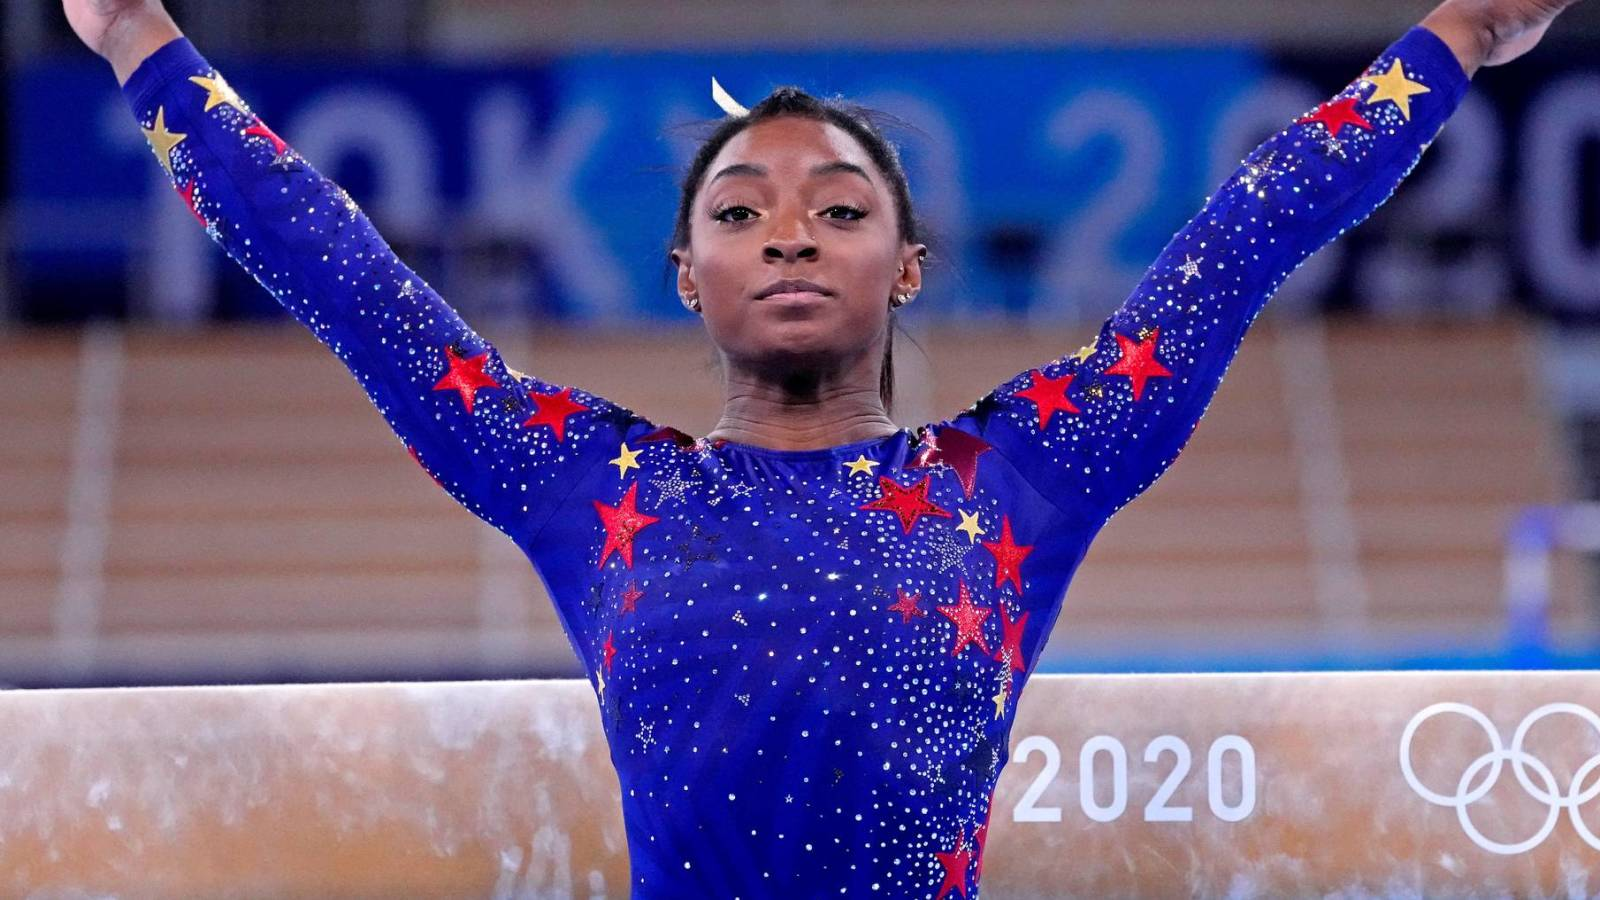 Simone Biles returns to compete in the final of the beam